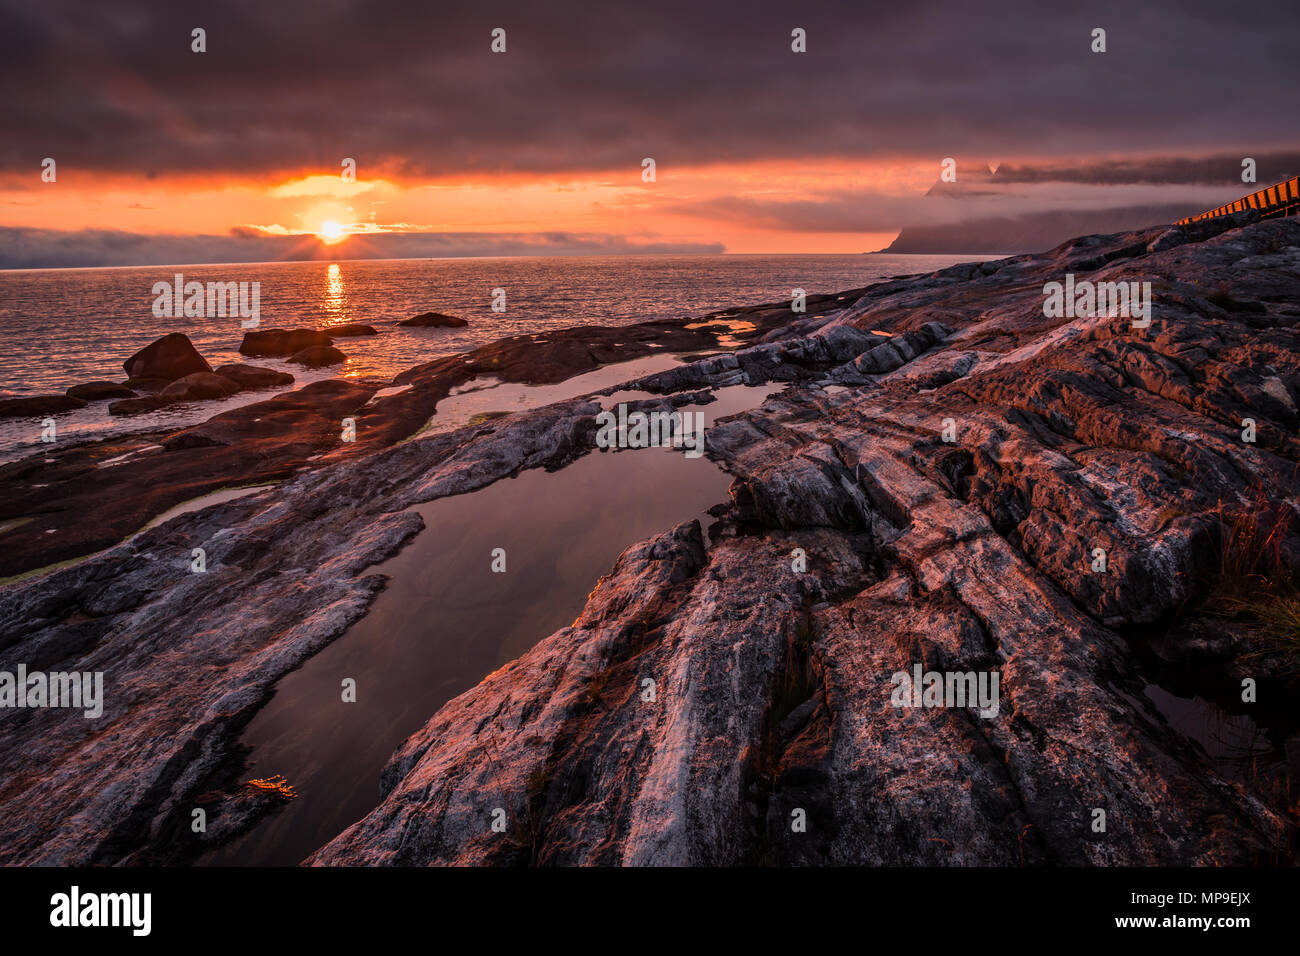 Dramatic, red and orange fiery summer sunset over the rocky shore with water puddles. Taken on island Senja, Norway. - Stock Image